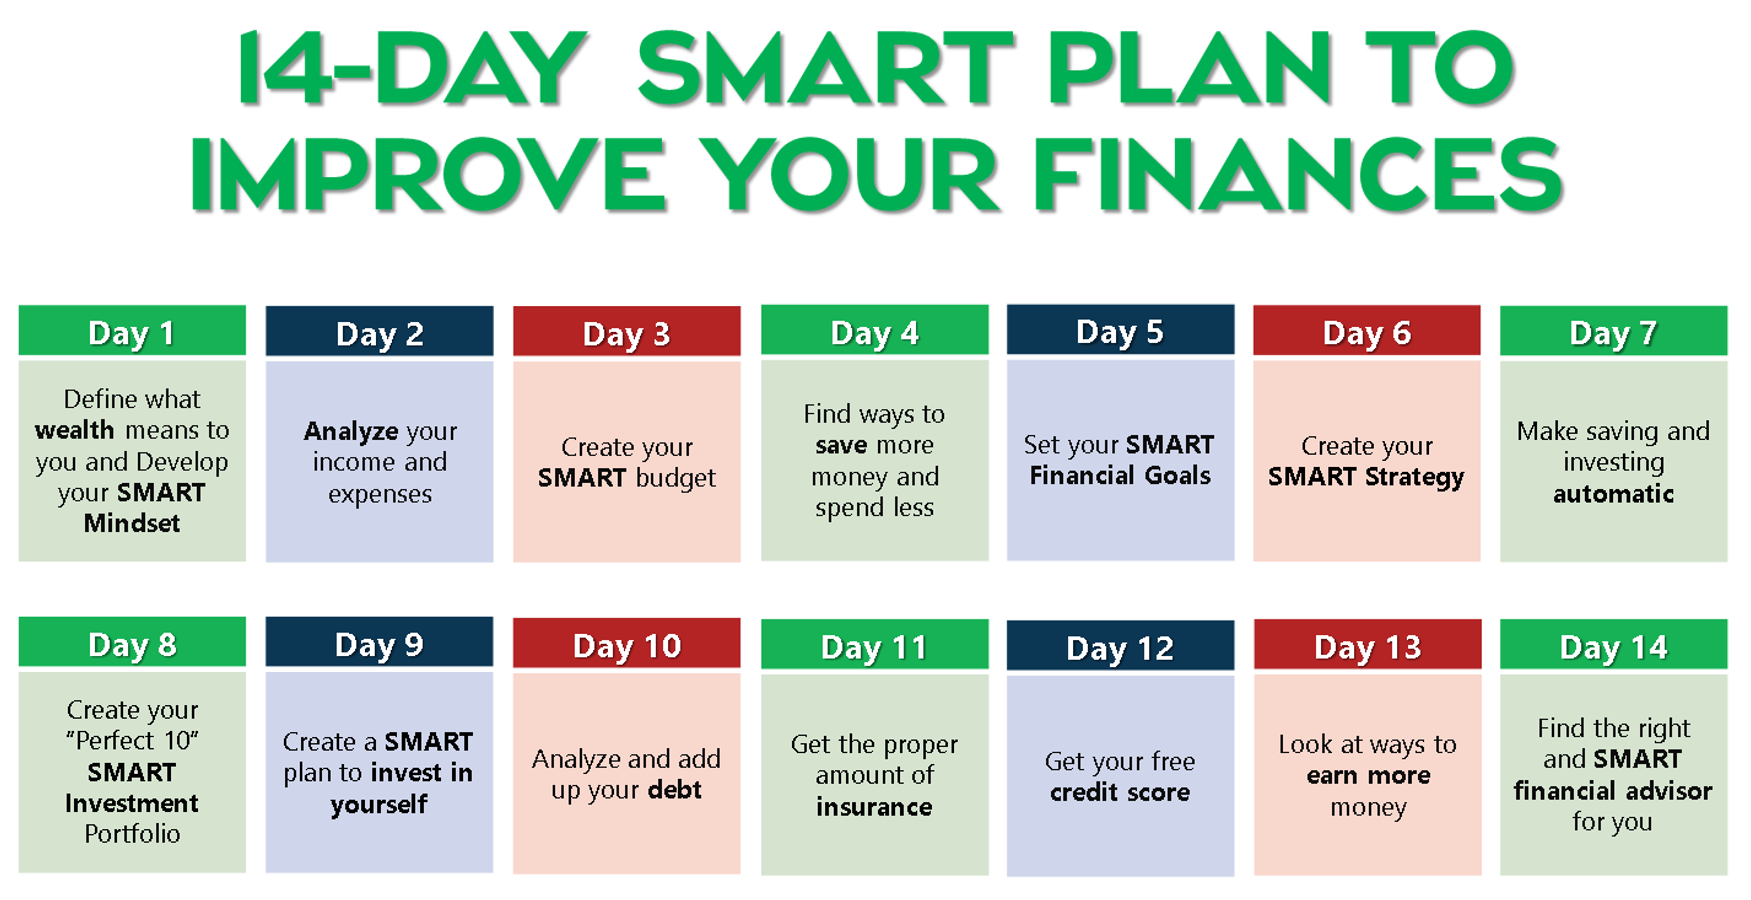 14-Day SMART Plan To Improve Your Finances